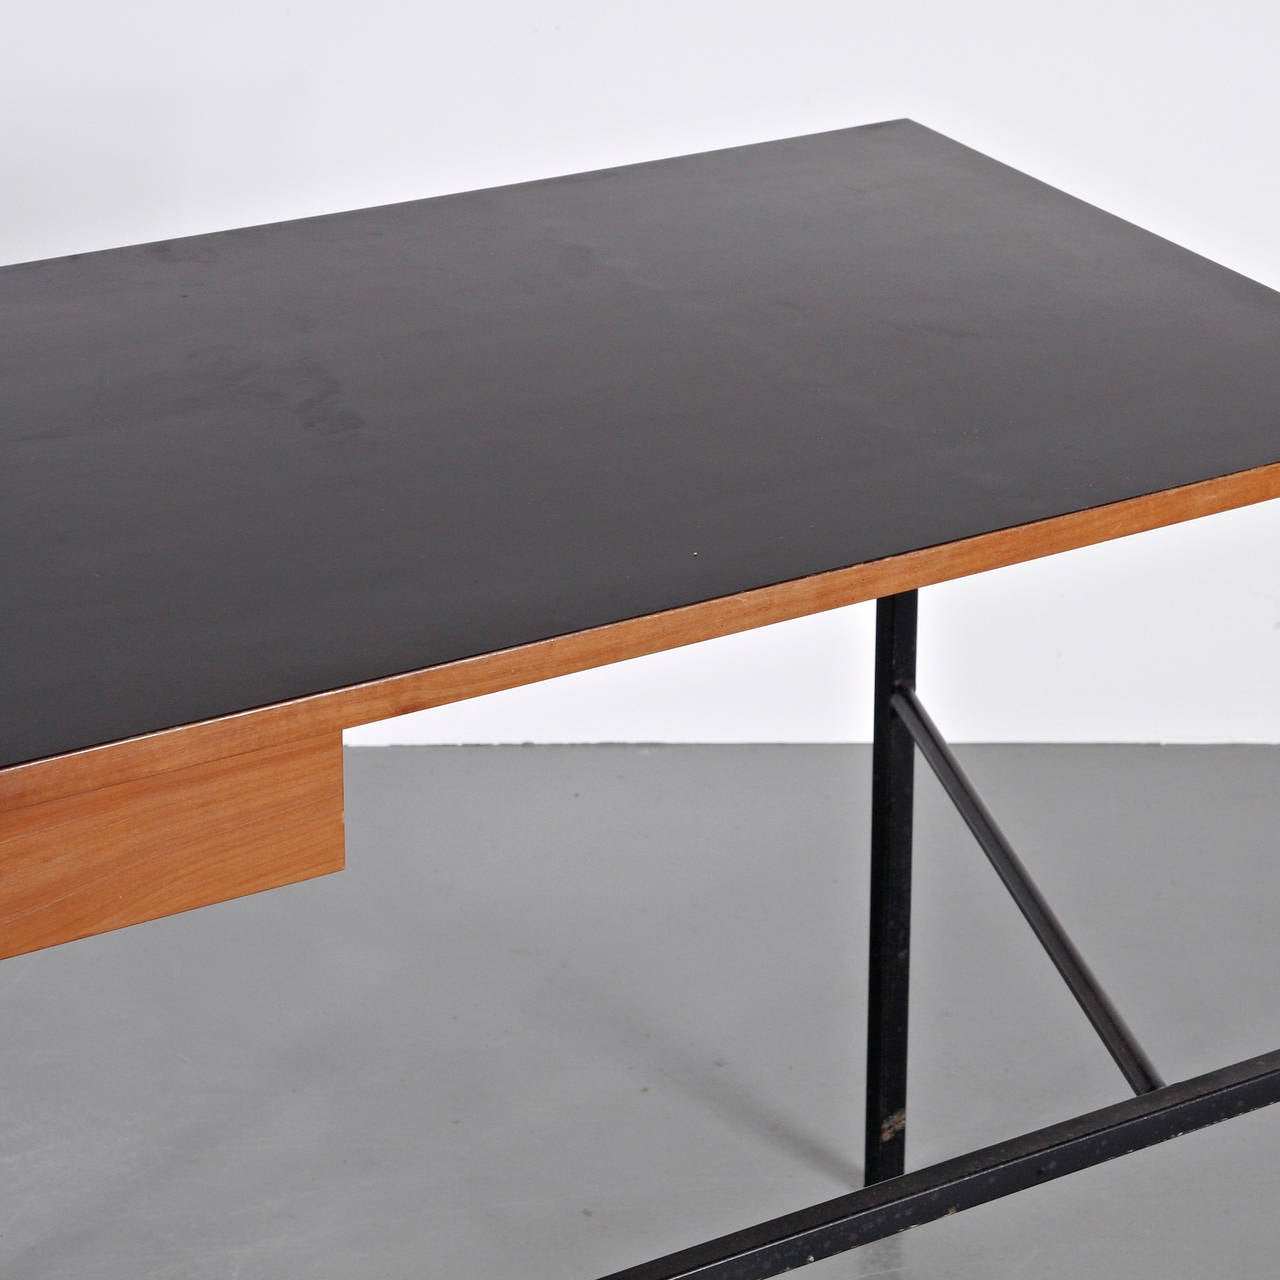 pierre paulin cm174 desk 1956 at 1stdibs. Black Bedroom Furniture Sets. Home Design Ideas